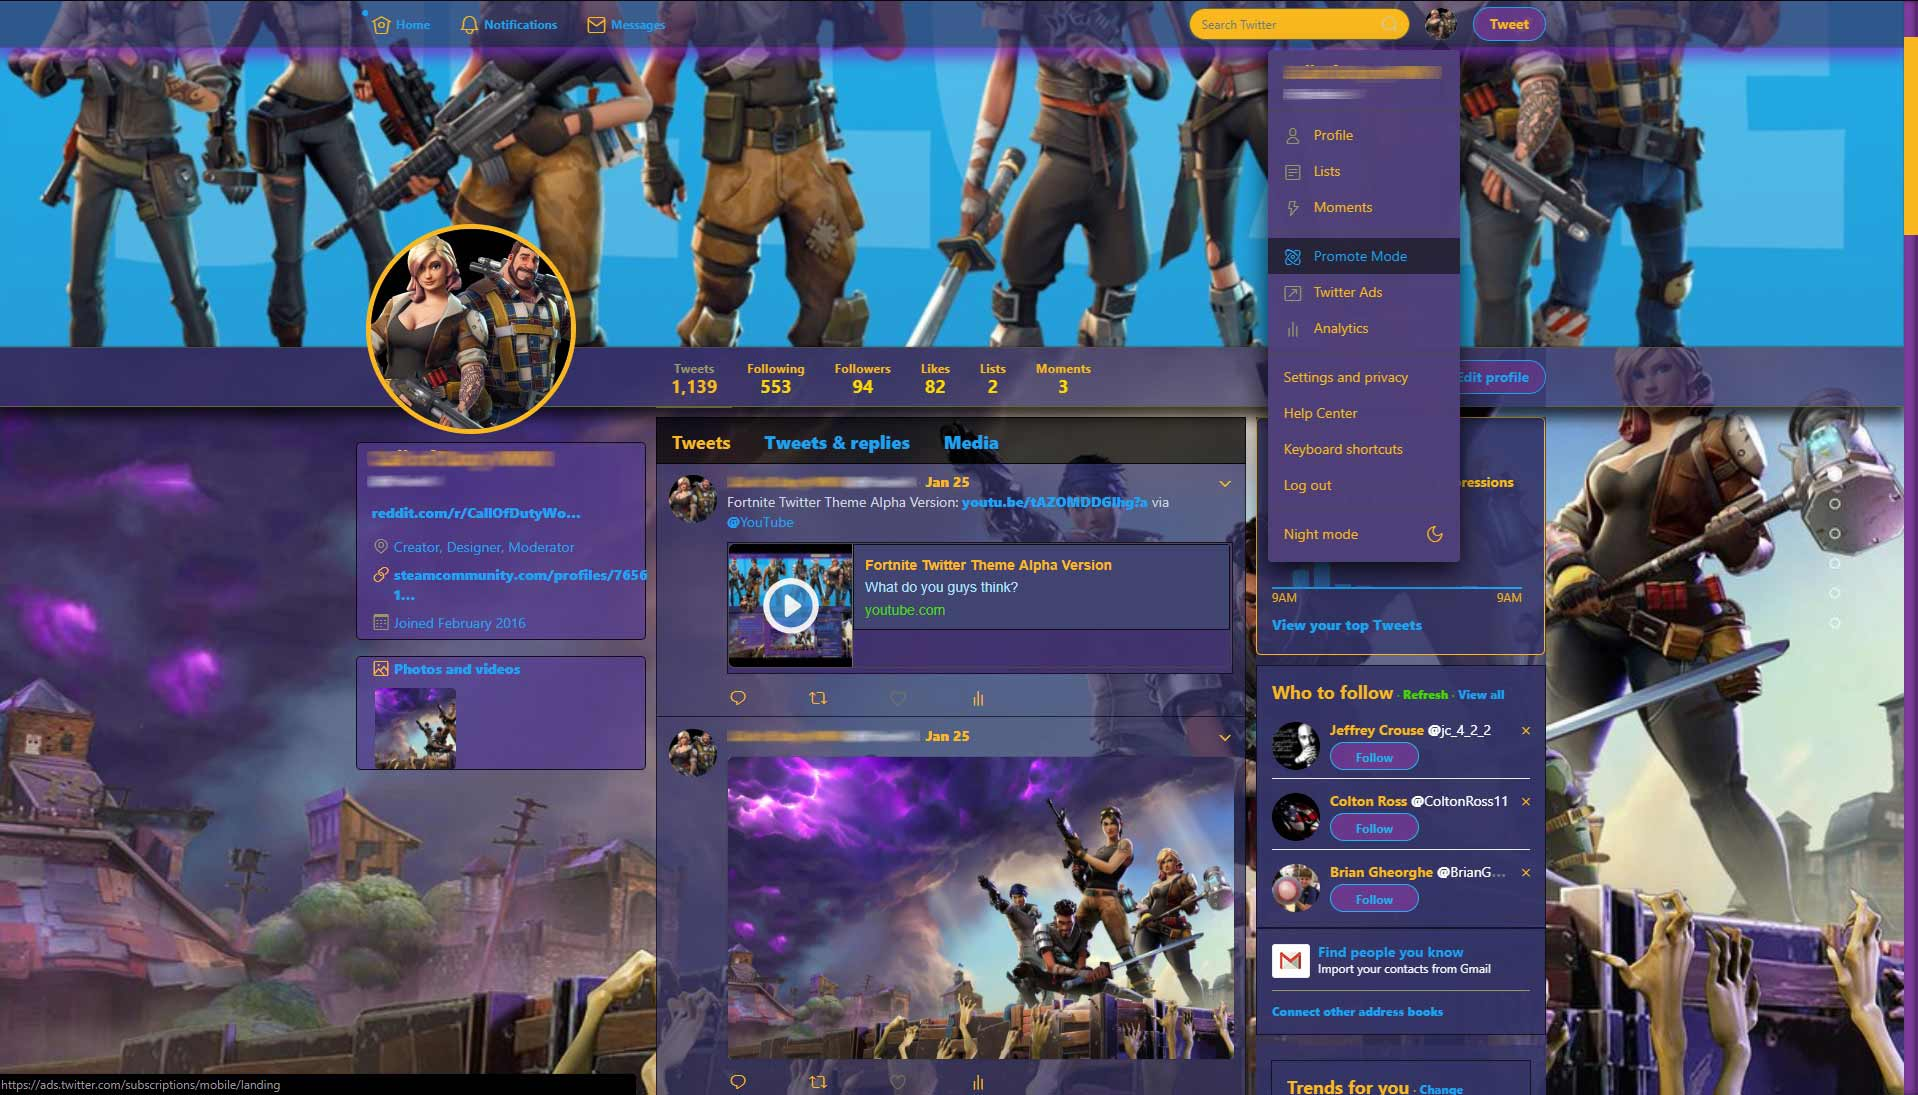 Fortnite Theme For Twitter Userstyles Org